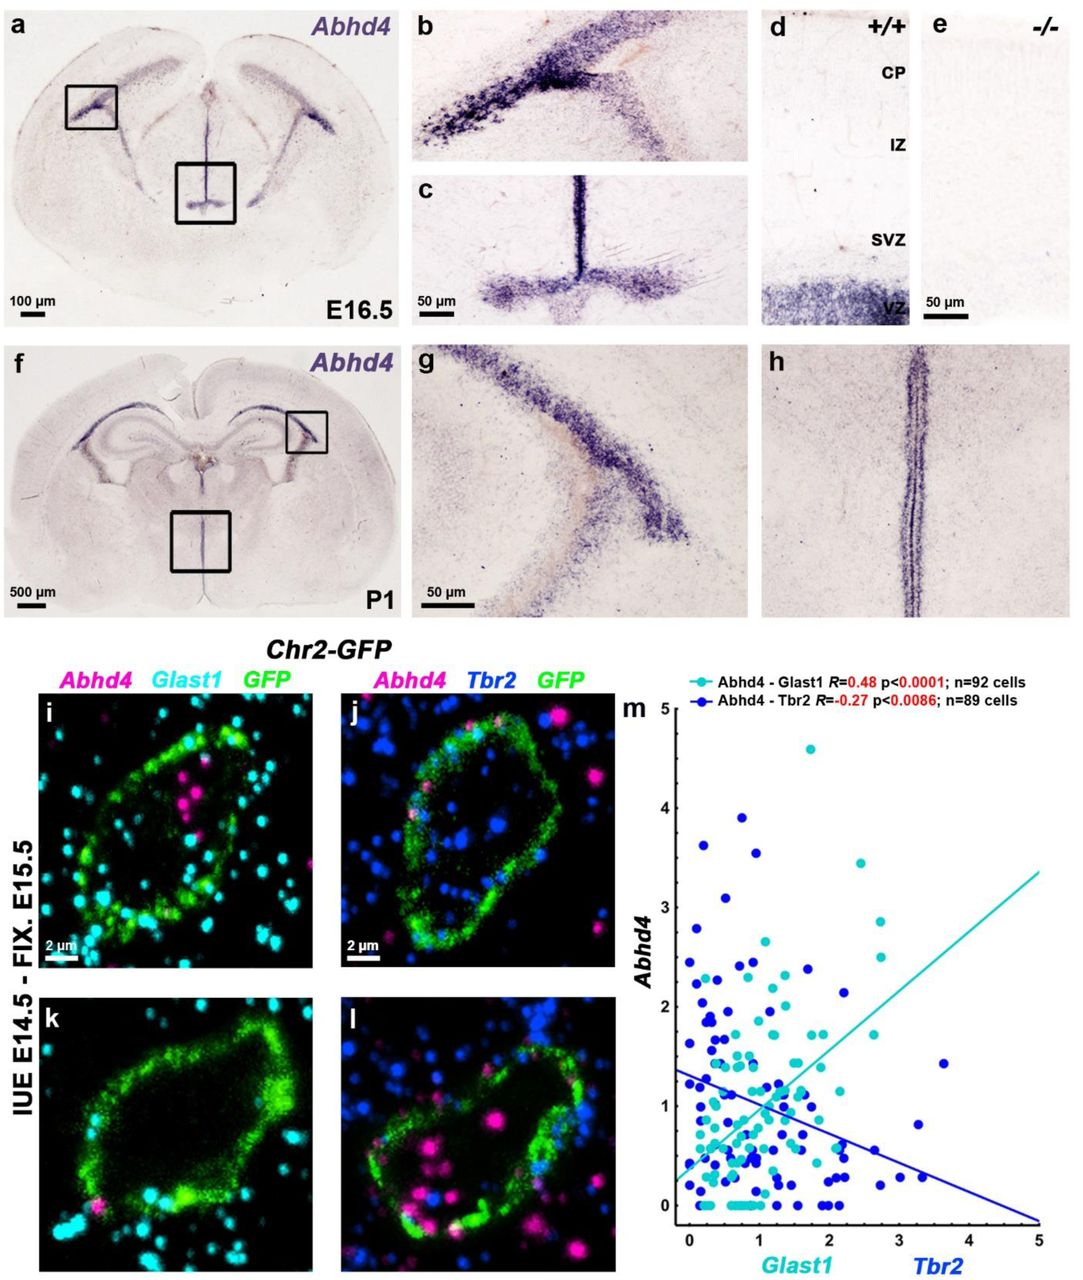 Abhd4 mRNA is expressed by radial glia progenitor cells in the germinative niches. a-h, Abhd4 mRNA is present exclusively in the ventricular zone along the lateral ( b,g ) and third ventricles ( c,h ) at both E16.5 ( a-d ) and P1 ( f-h ) wild-type (+/+) mice. The specificity of the Abhd4 riboprobe is validated in Abhd4-knockout (-/-) animals ( e ). CP, cortical plate; IZ, intermediate zone; SVZ, subventricular zone; VZ, ventricular zone. i-l, High-power confocal imaging outlines the plasma membrane of ChR2-GFP -electroporated cells and delimits multi-color RNAscope analysis into single cells within the heterogeneous and densely packed cell layer of the ventricular zone. Abhd4 mRNA typically colocalizes with the radial glia progenitor cell marker Slc1a3 mRNA (encoding GLAST1 protein) ( i ), whereas other cells are often devoid of both markers ( k ), or either express Eomes (encoding TBR2 protein), a marker for committed daughter cells ( j ), or Abhd4 alone ( l ). m, Correlation analysis of Abhd4 mRNA levels with Glast1 or Tbr2 mRNA levels in single cells (Spearman's rank correlation, Abhd4/Glast1: R = 0.4814, P